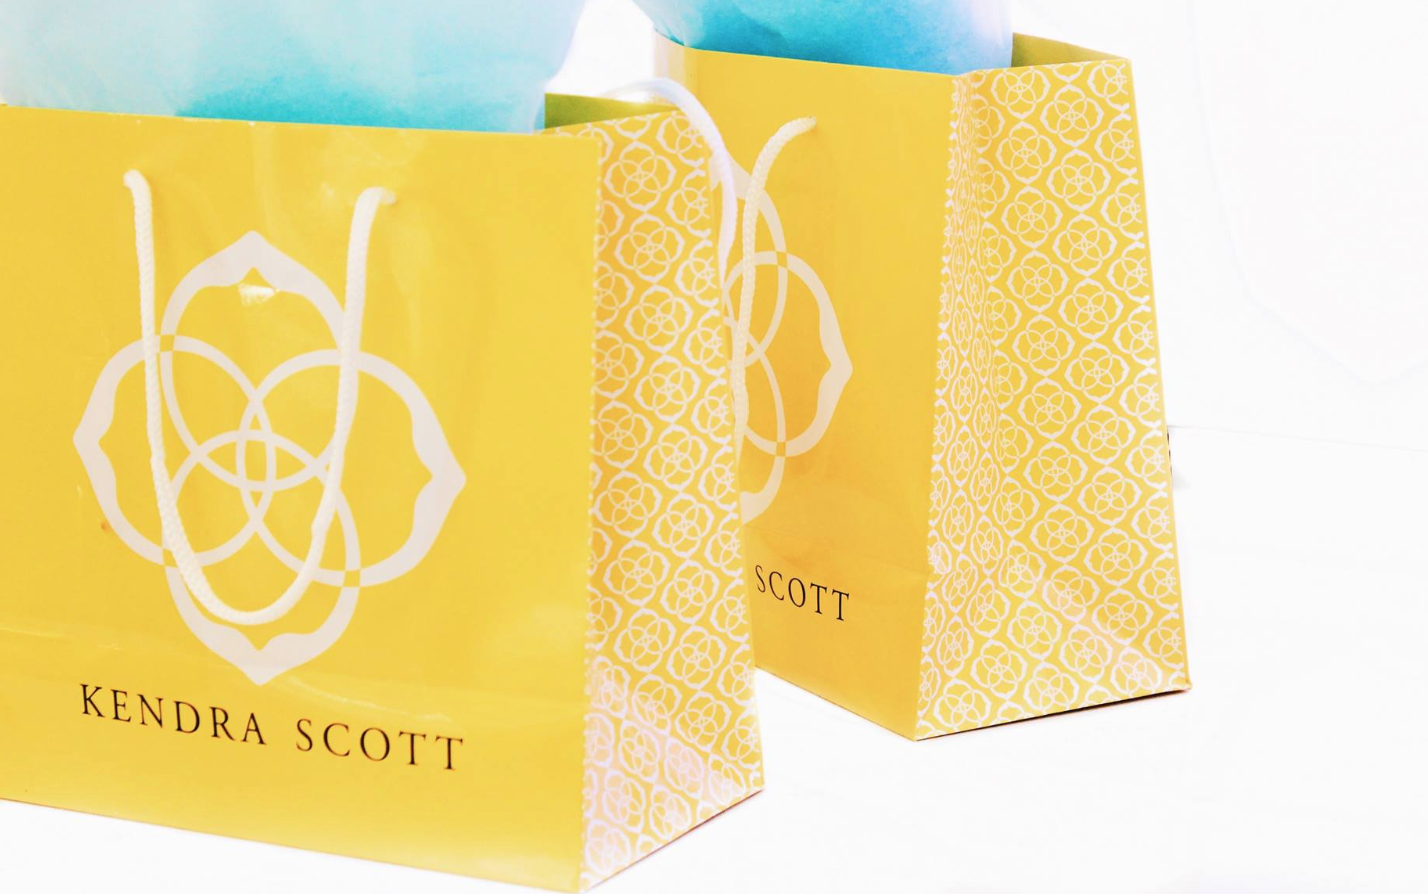 Kendra Scott- Fashion X Girls Promotional content